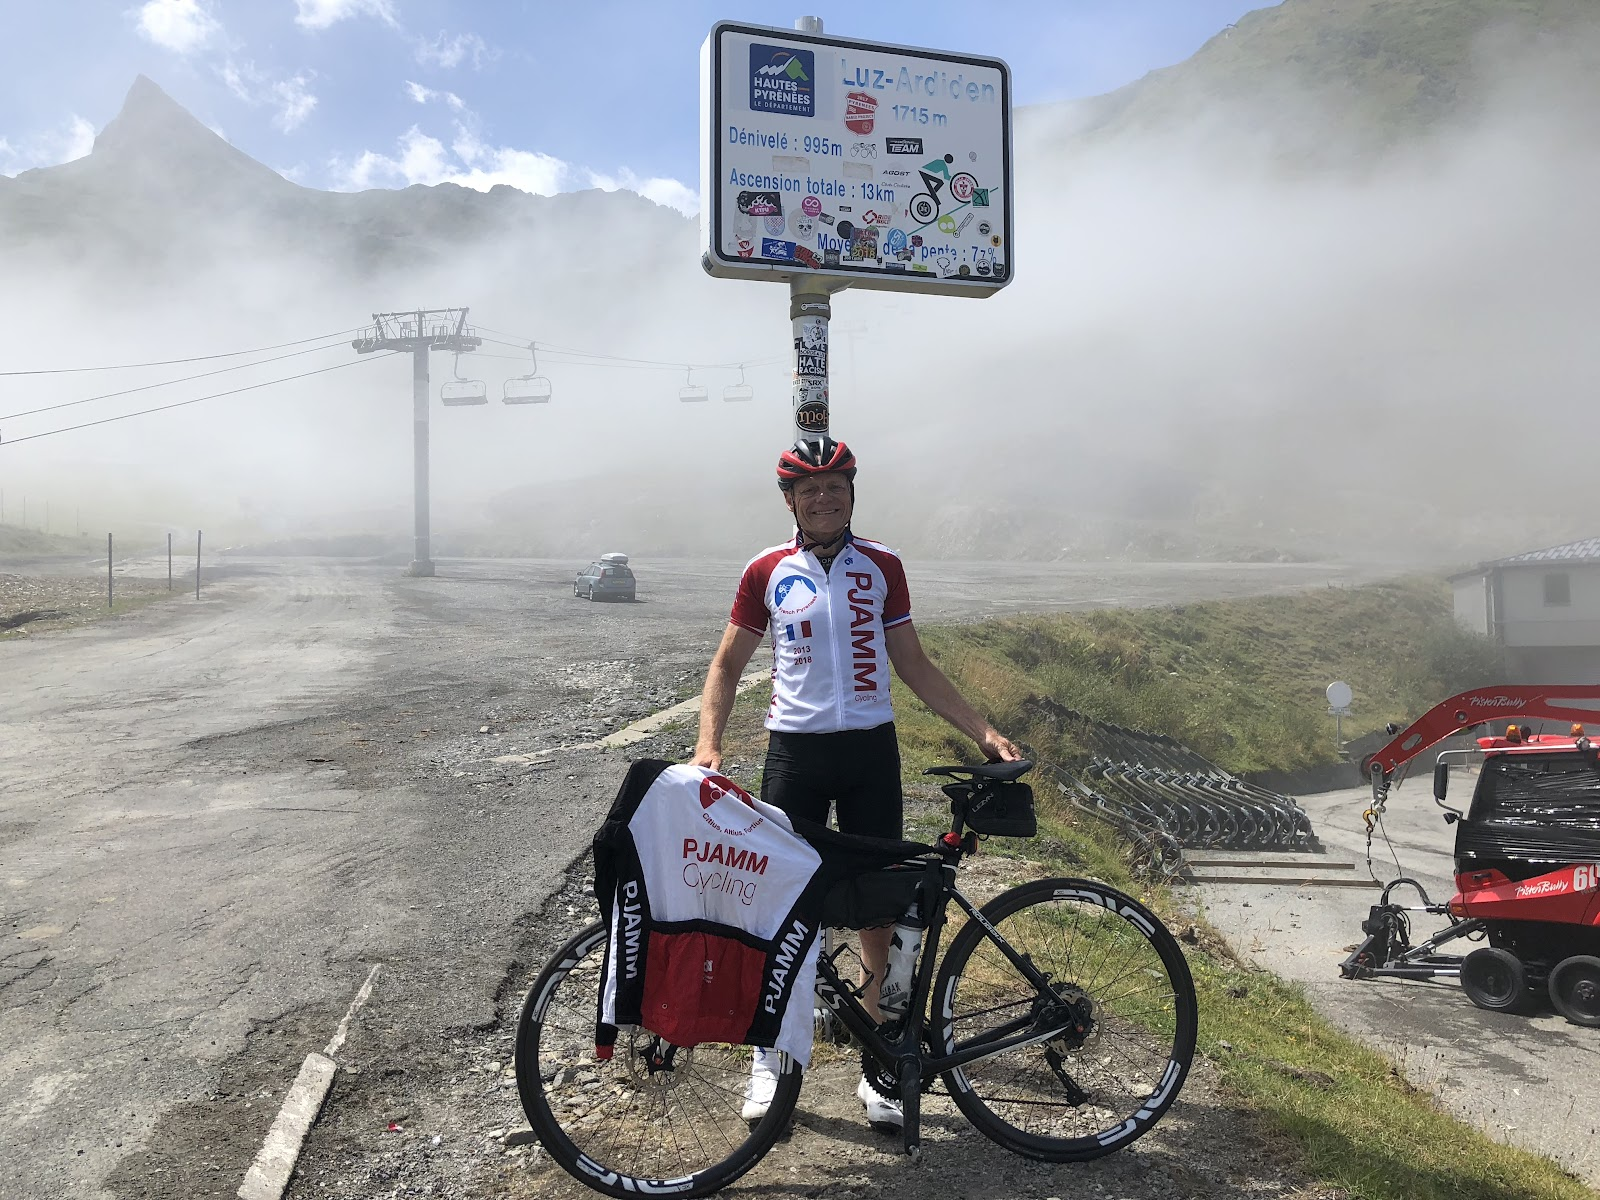 Bicycle ride of Luz Ardiden - John Johnson PJAMM with bike at final km marker